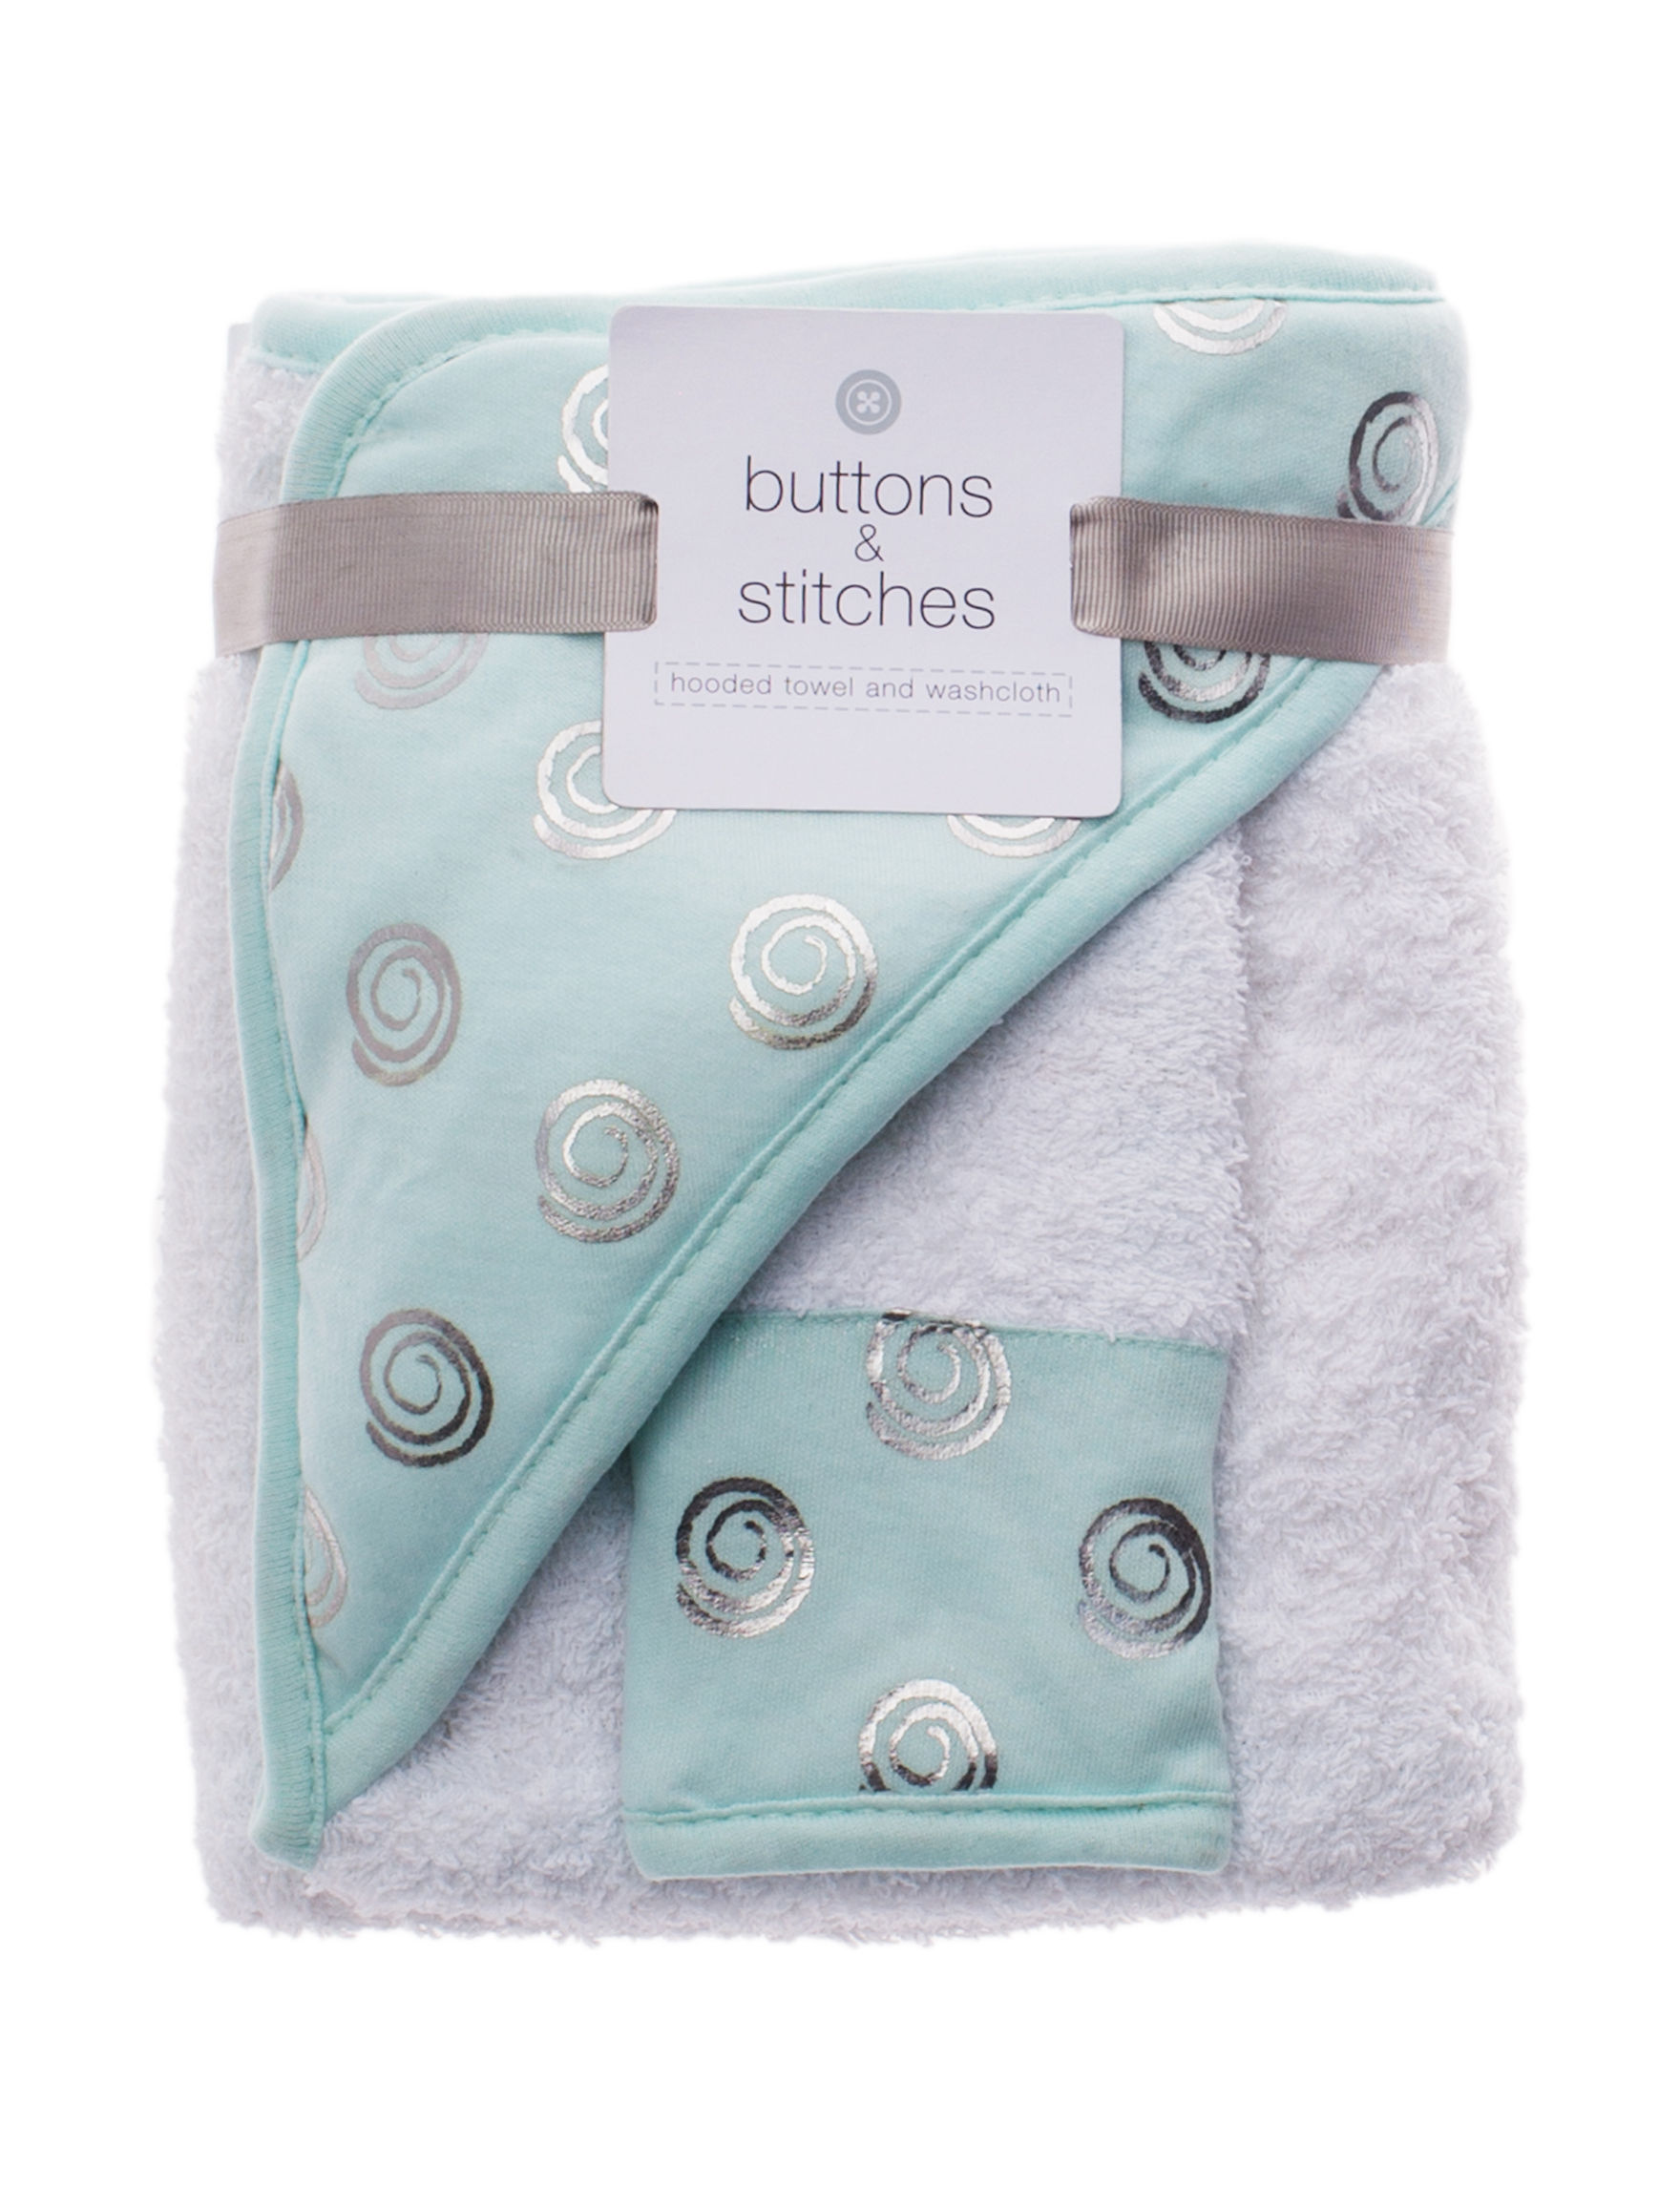 Buttons & Stitches Mint Hooded Towels Washcloths